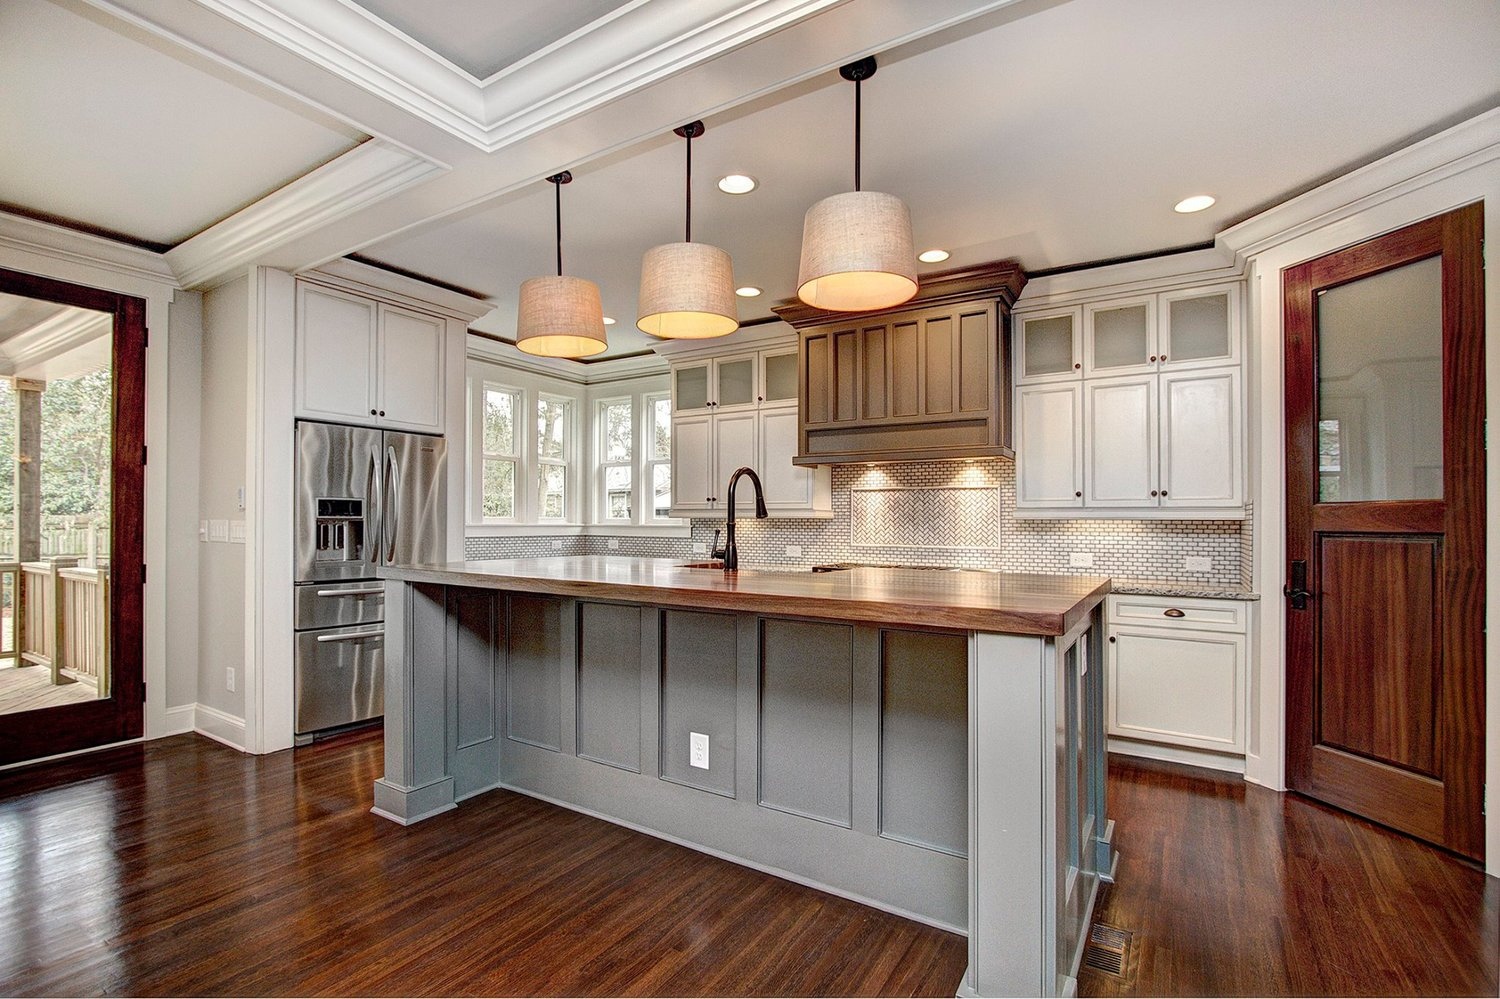 craftsman kitchen design. Carolina Craftsman Builders Kitchen Design Jpg  A Chef S Delight Best Of CTVNewsOnline Com